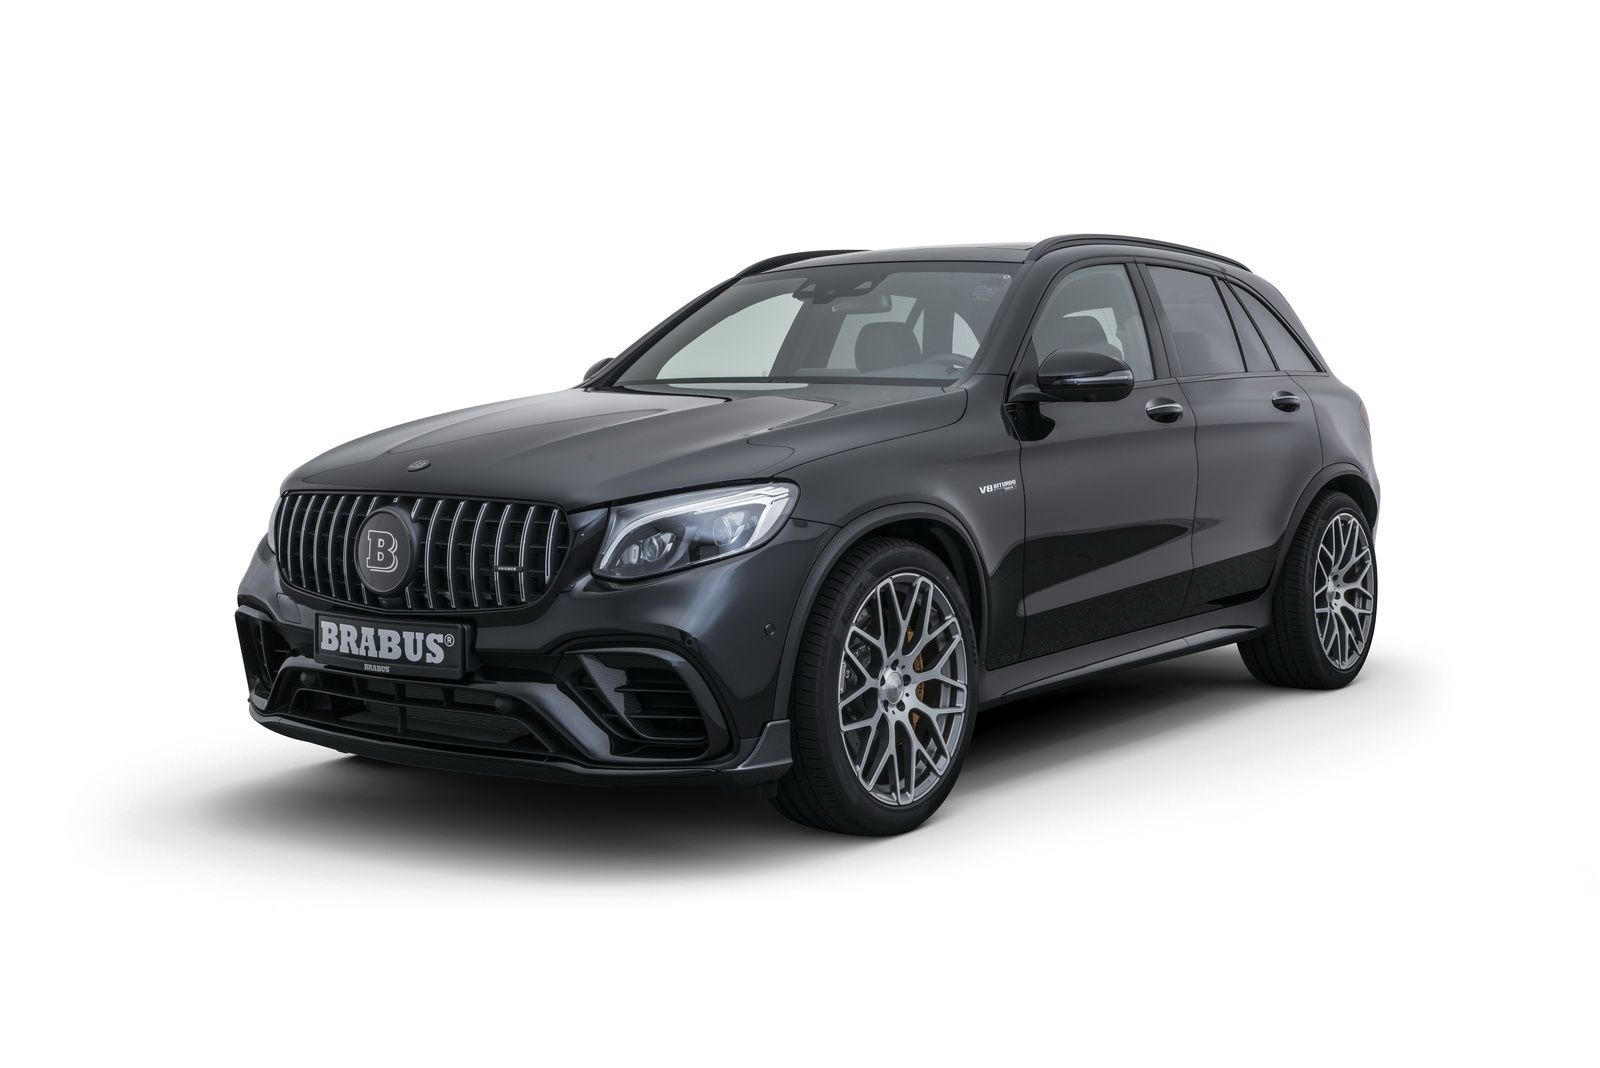 Brabus 600 Mercedes Amg Glc 63 S Packs 600 Hp 441 Kw Mercedes